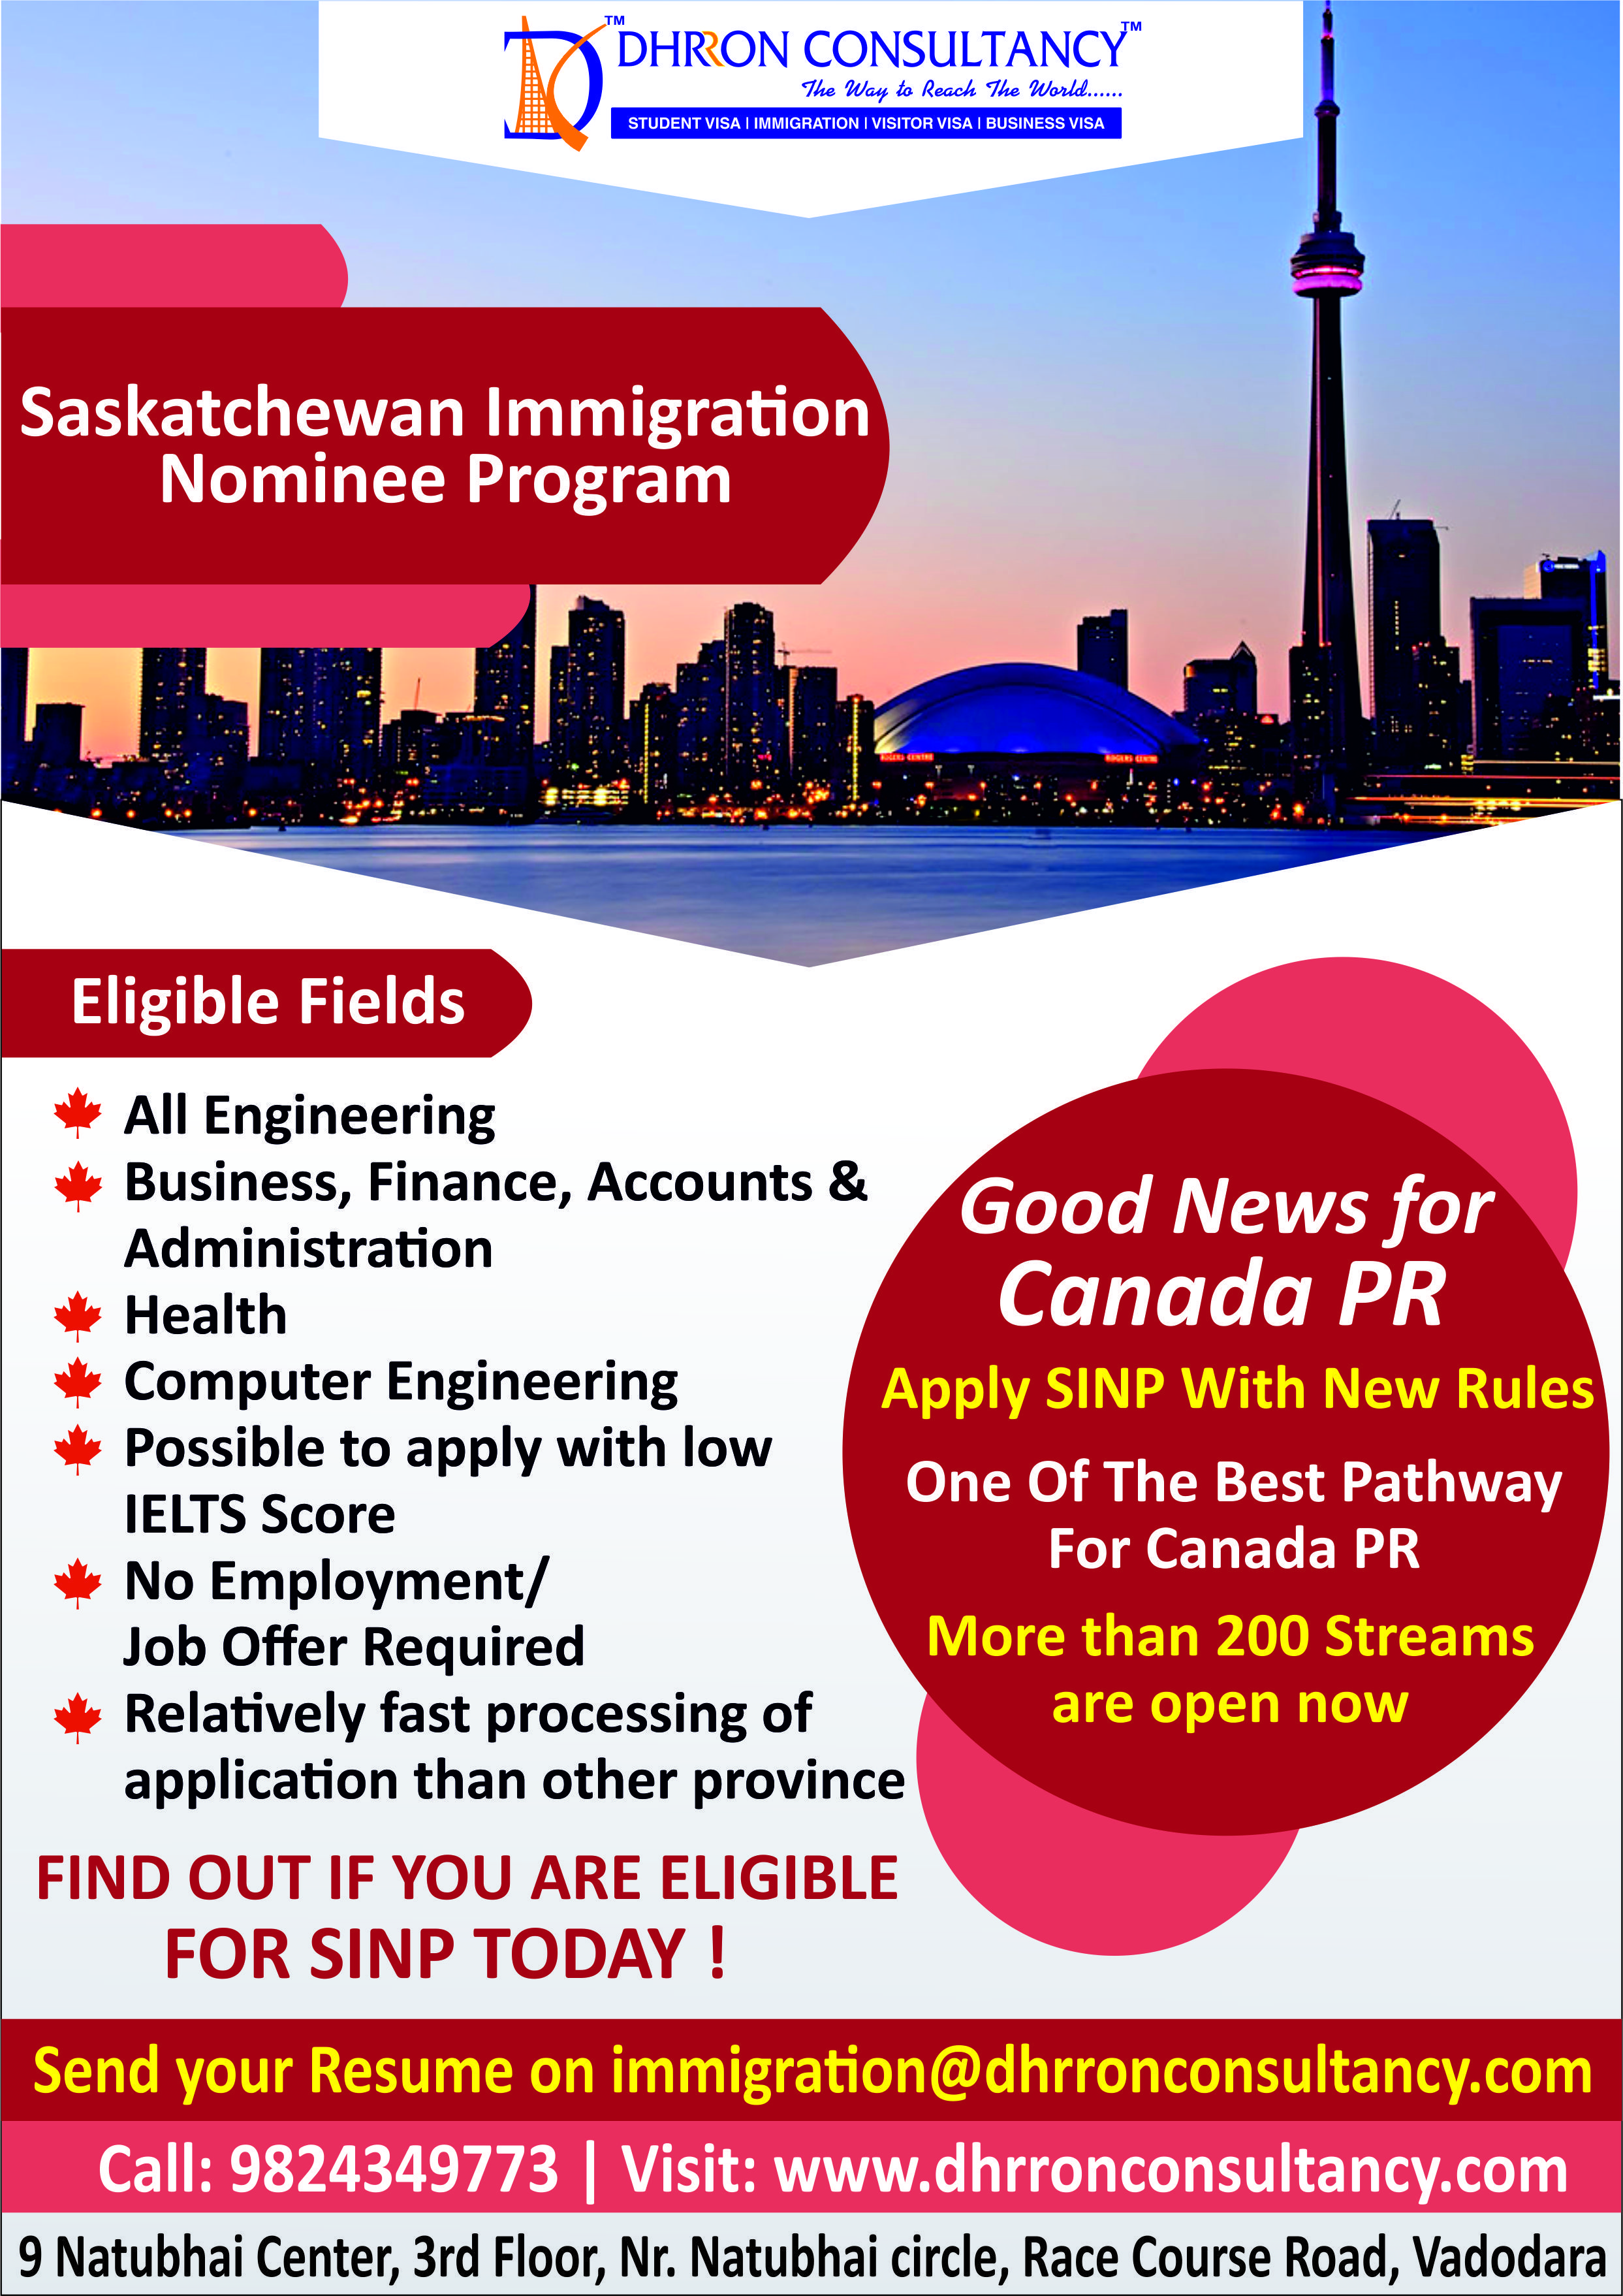 Good News For Canadapr Apply Sinp With New Rules One Of The